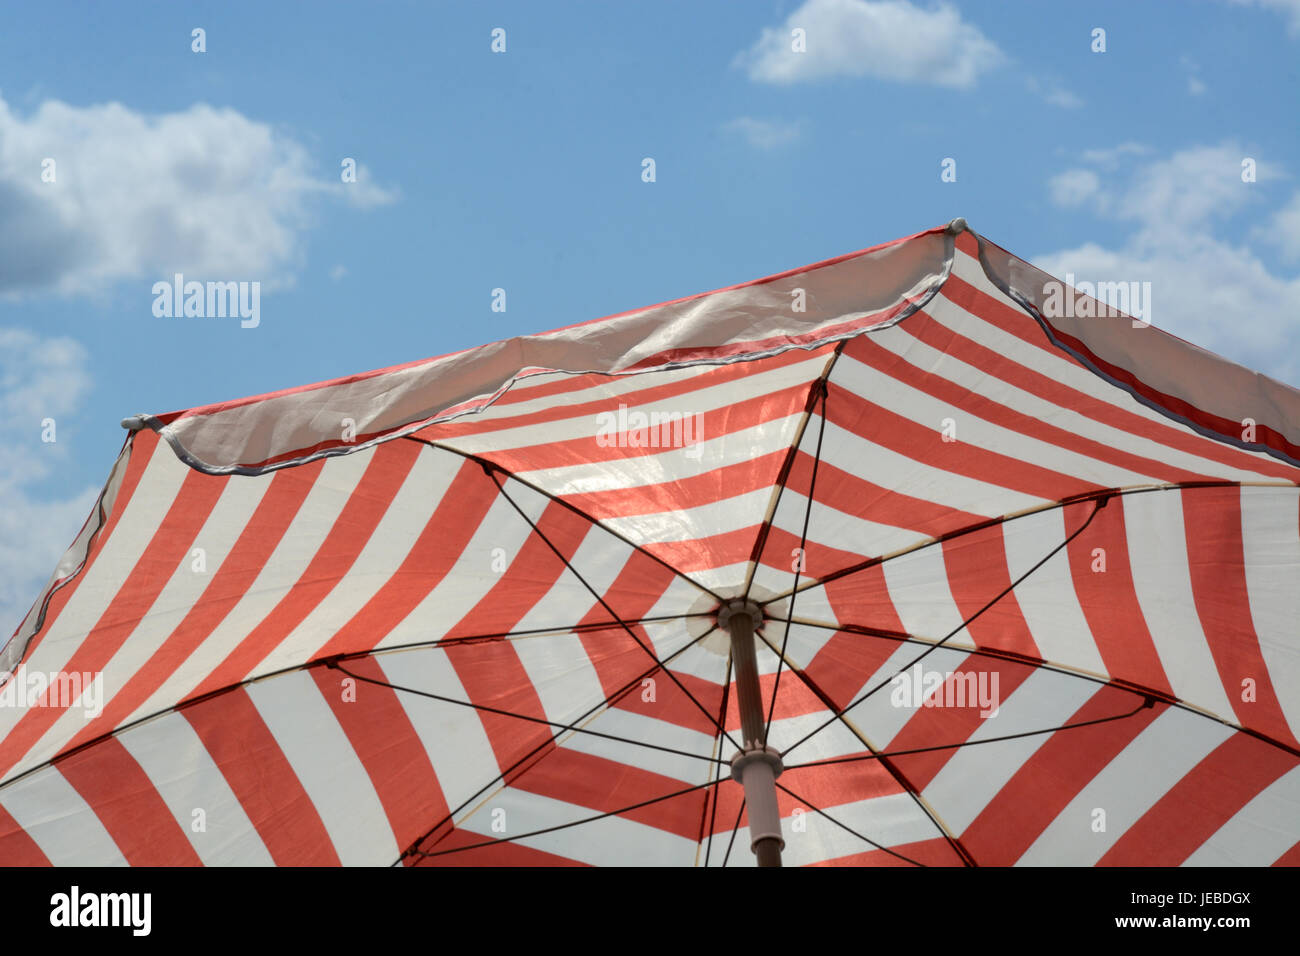 Red striped umbrella parasol to provide shade and sun protection against blue sky with light clouds - Stock Image